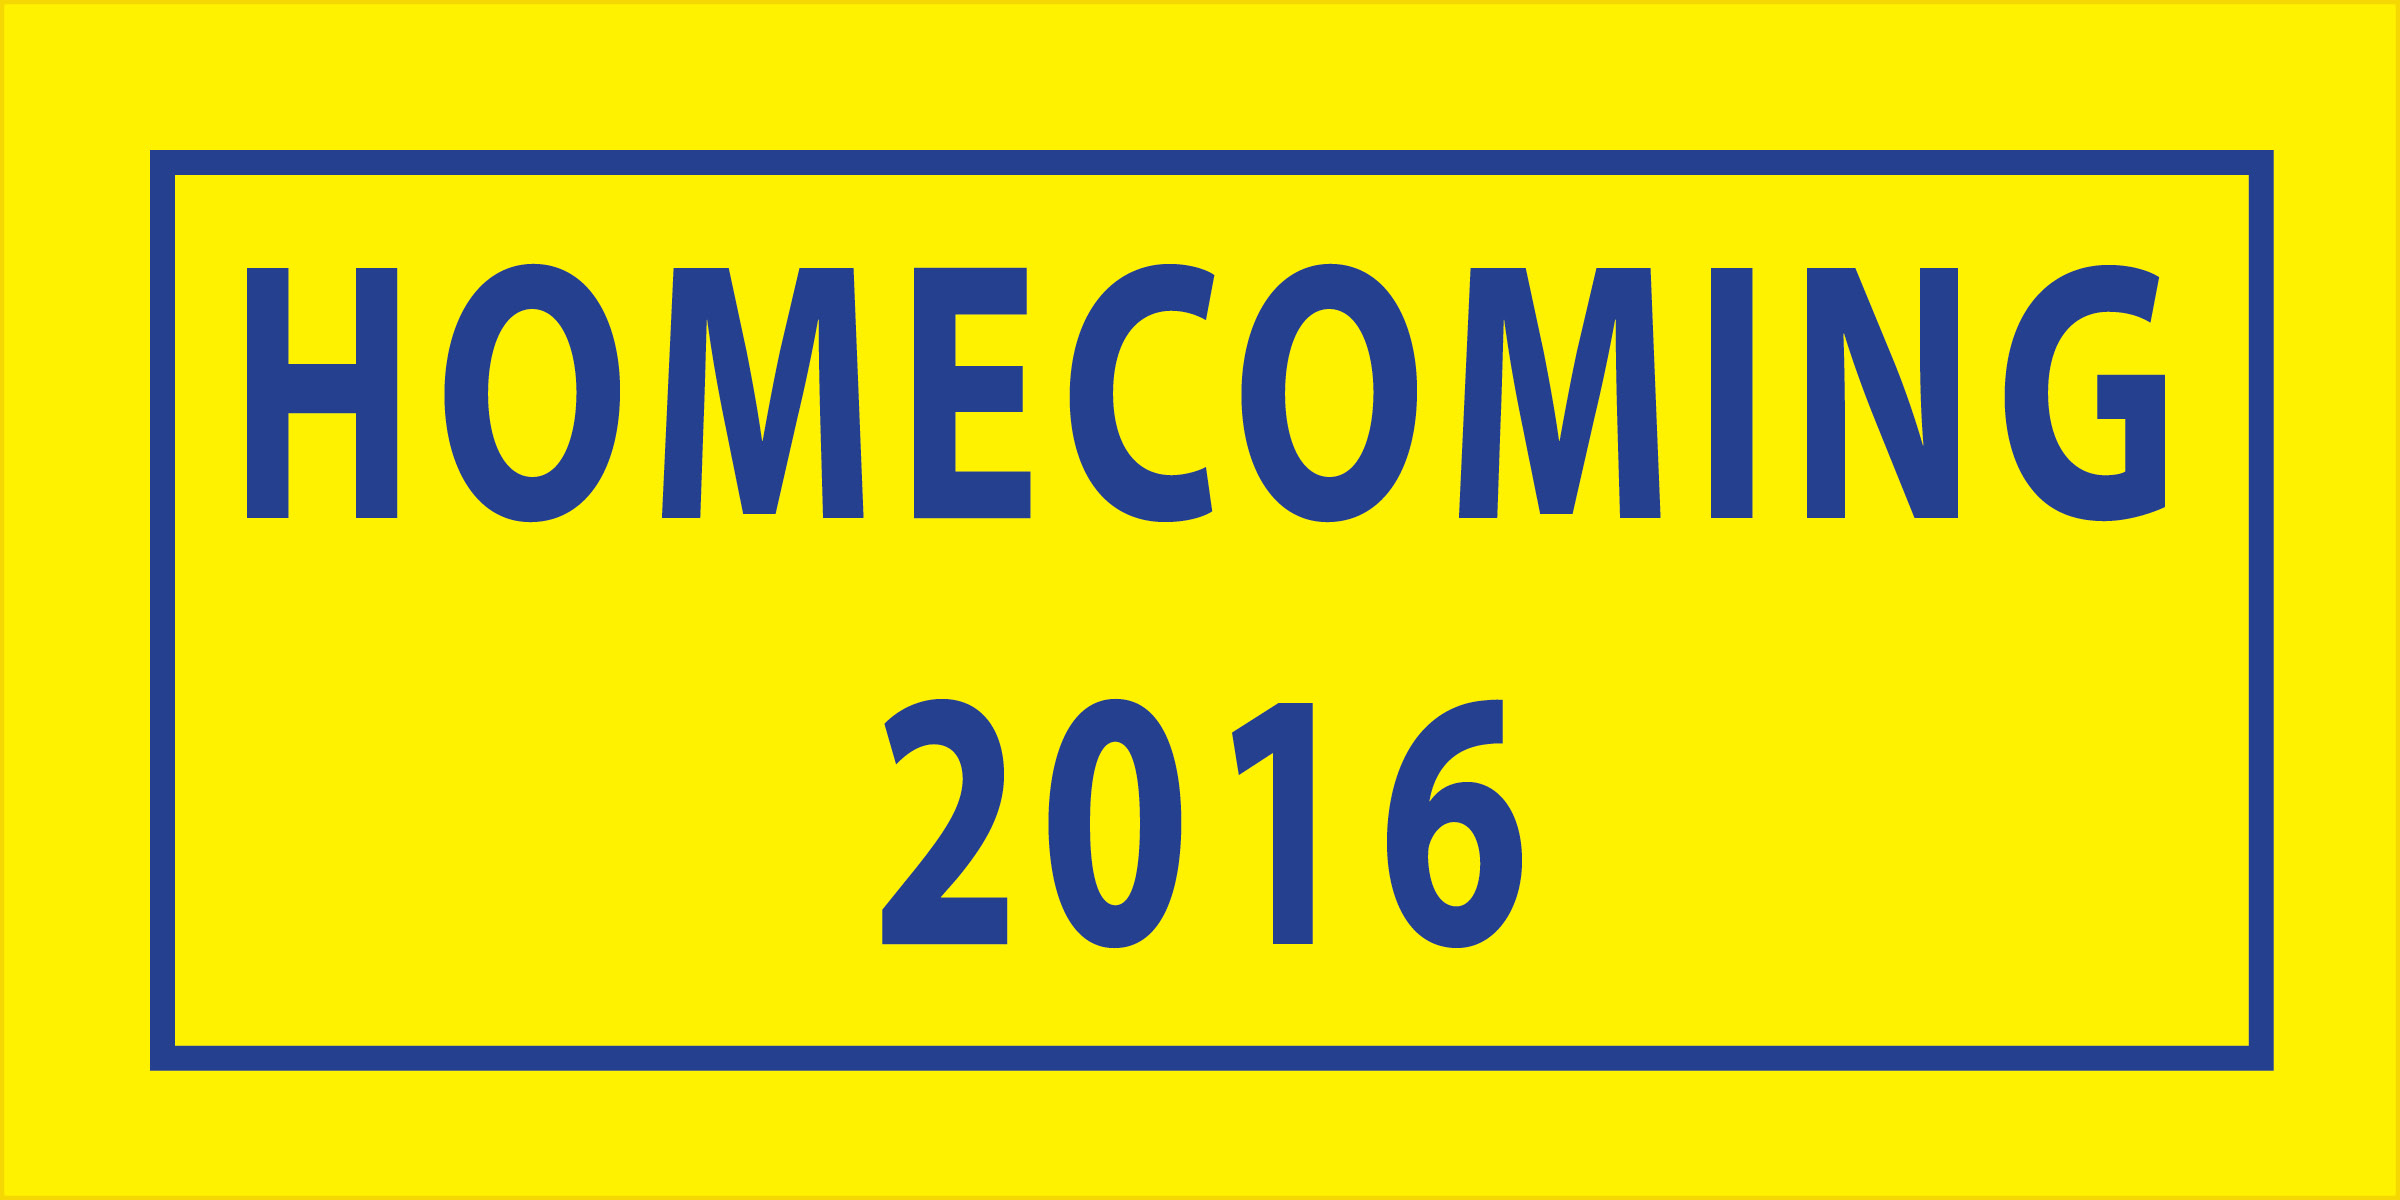 Graphic showing Homecoming 2016